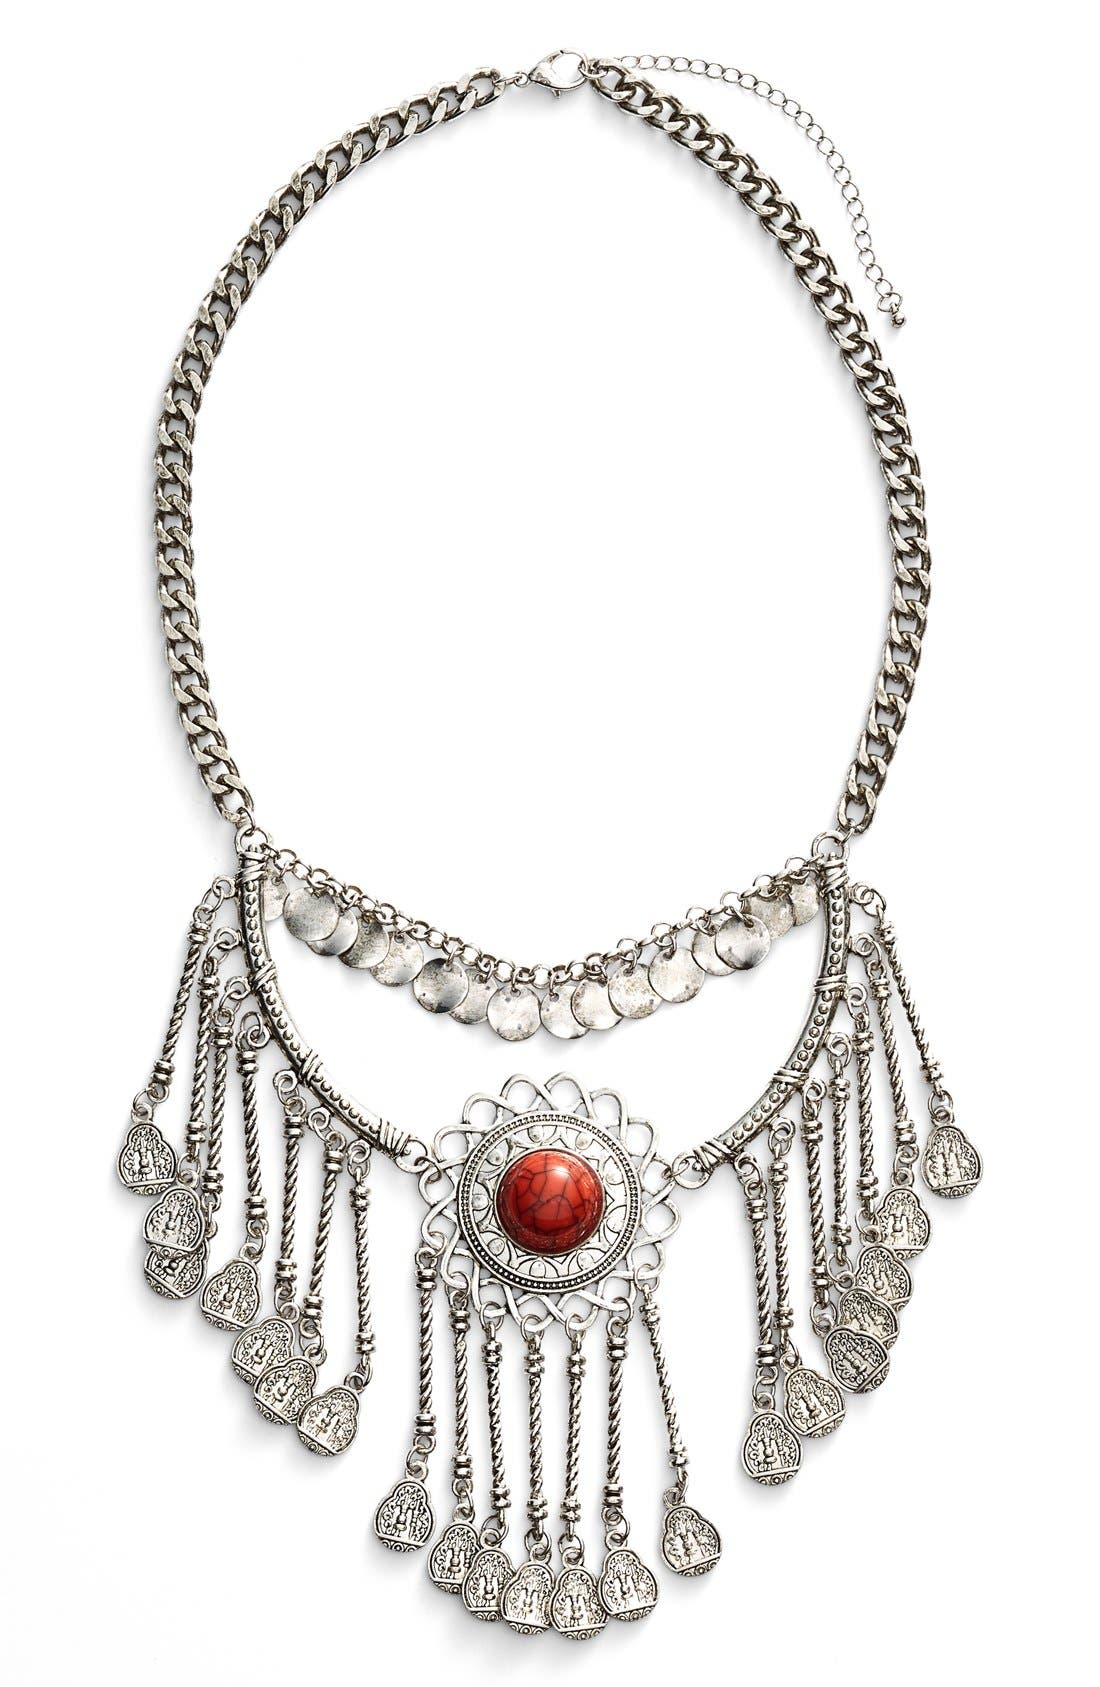 Main Image - BP. Stone & Coin Statement Necklace